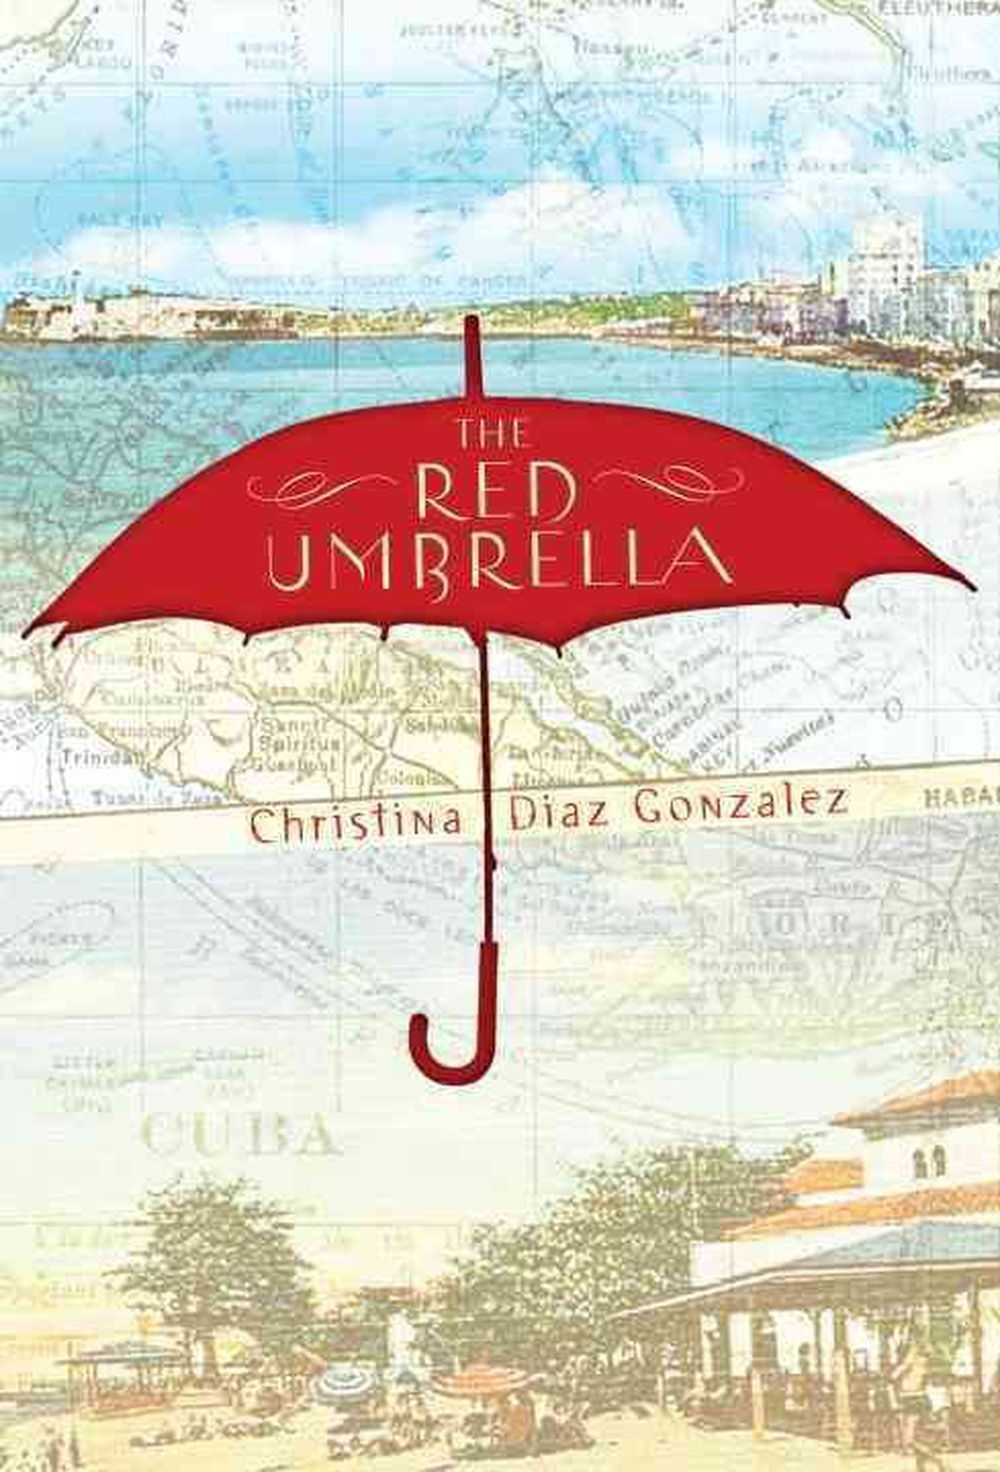 christina-diaz-gonzalez-red-umbrella.jpg